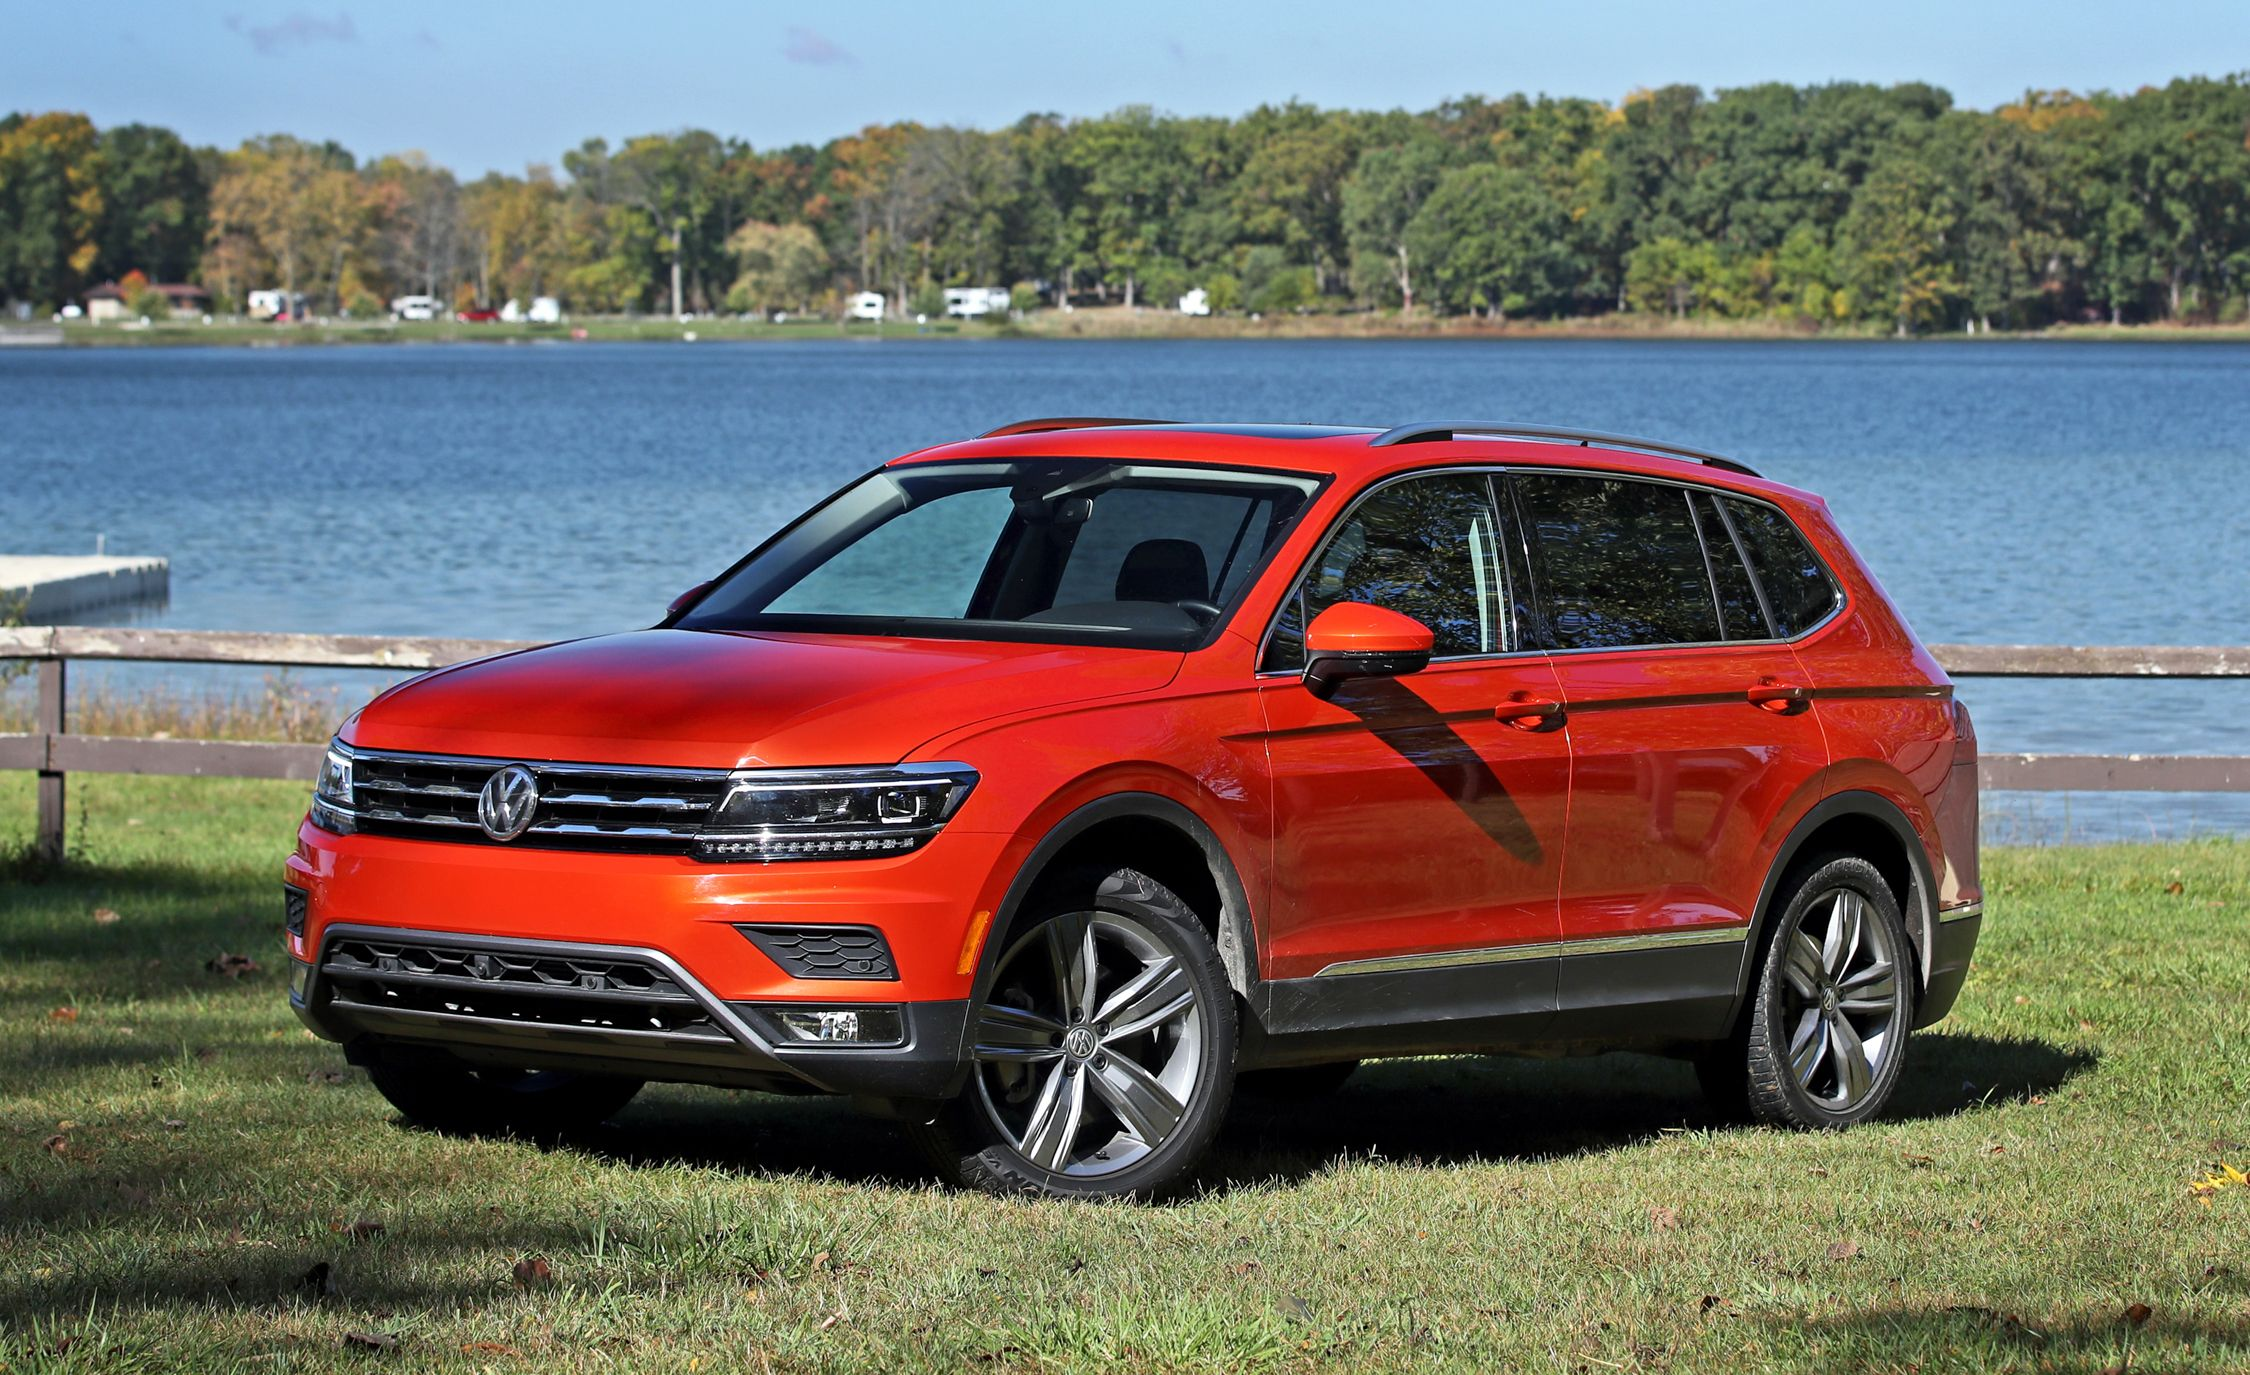 2019 Volkswagen Tiguan Reviews Volkswagen Tiguan Price Photos